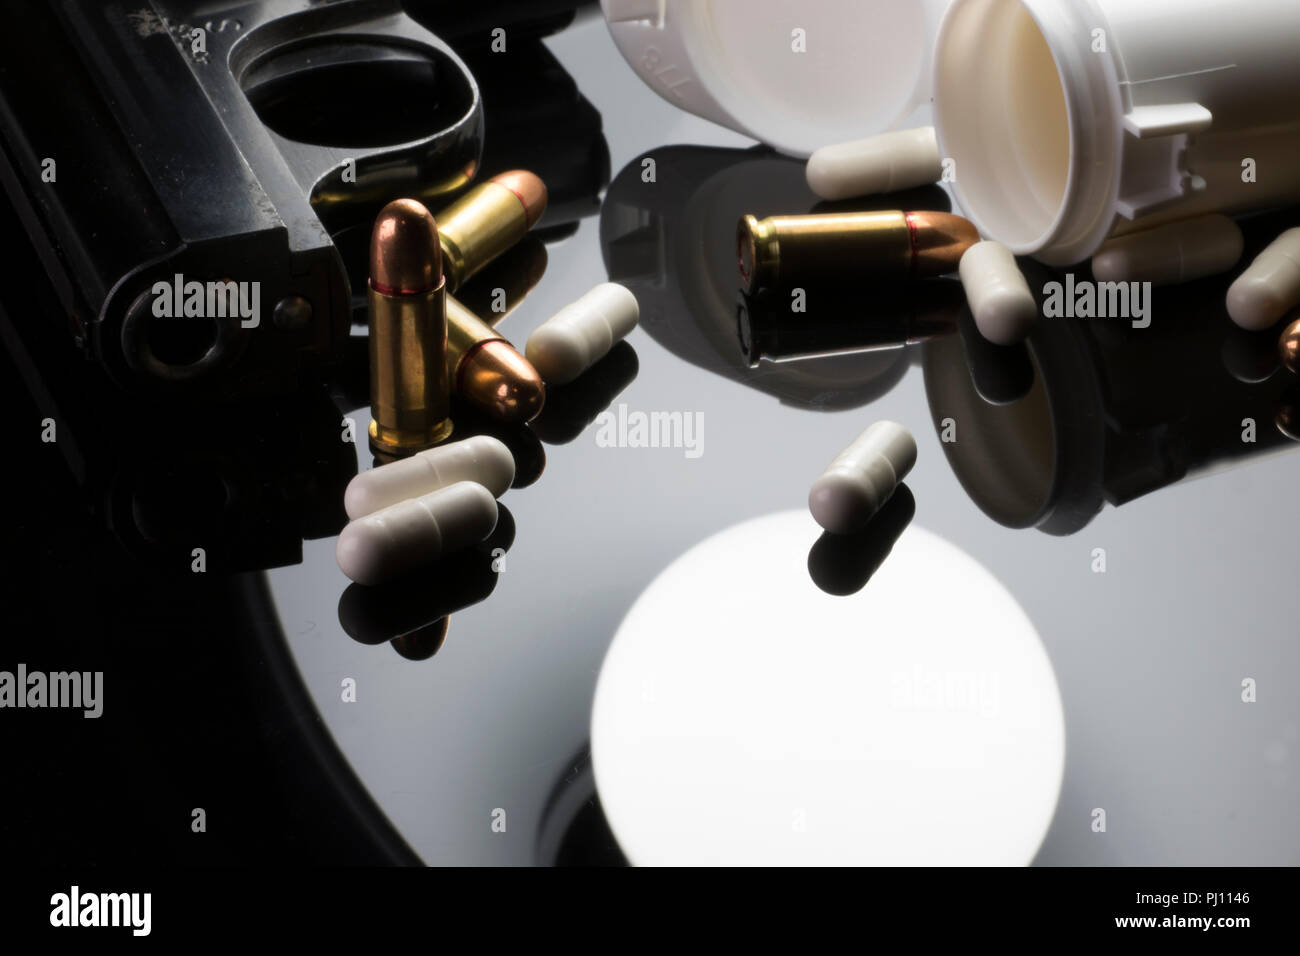 Gun Bullets and White Pills on a black table. - Stock Image